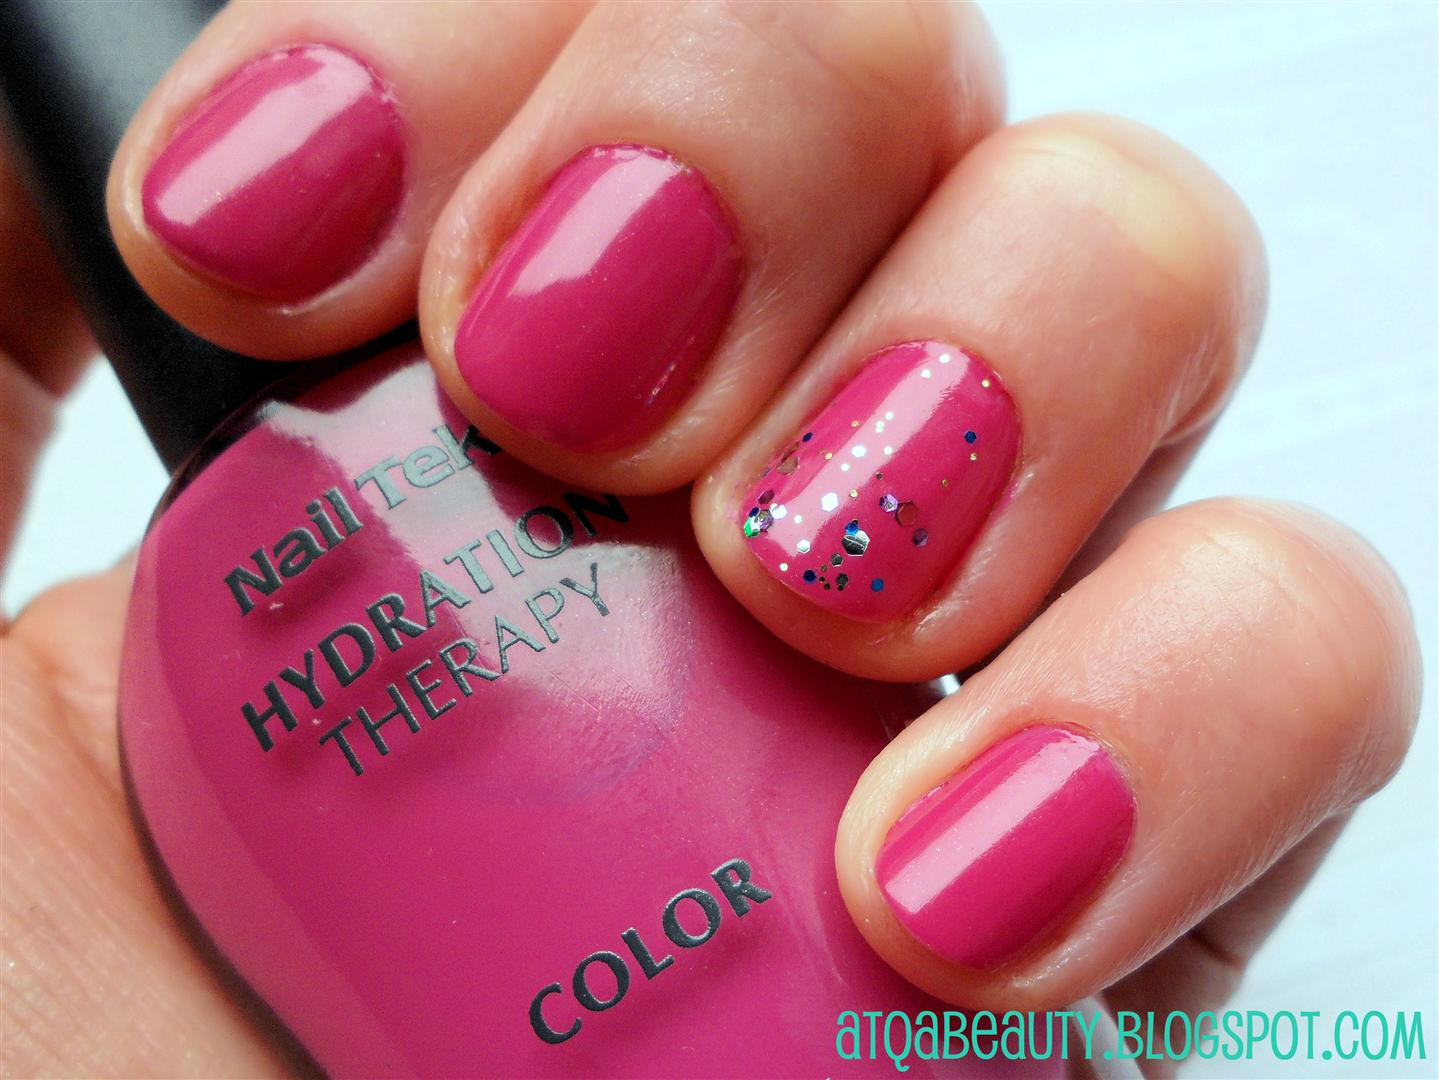 Paznokcie :: Nail Tek Hydration Therapy Color, Dose-A-Rosa